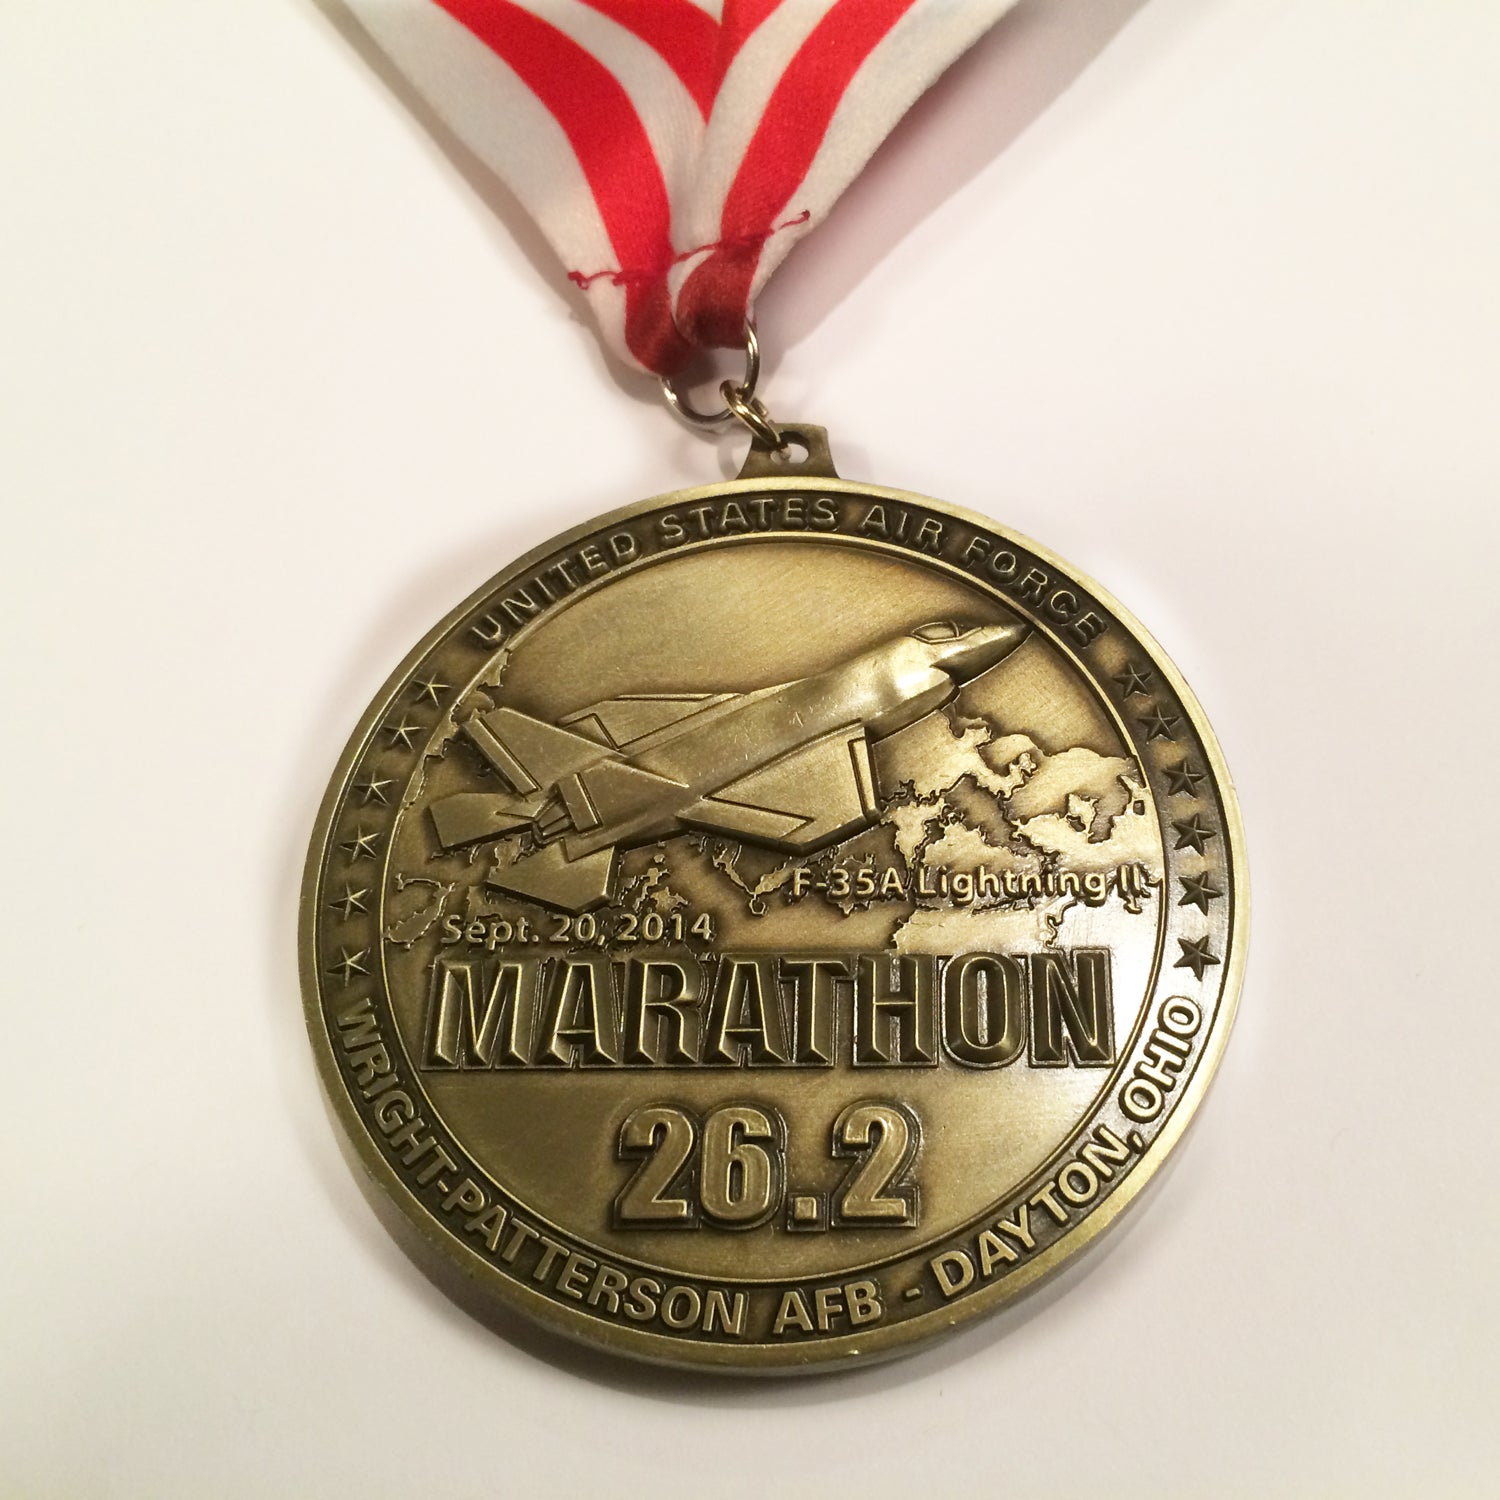 Solera: Nothing says raw power like a fighter jet. Every year, the Air Force Marathon features a different military plane on its medal and promotional materials, and every year the medal is a crowd favorite.